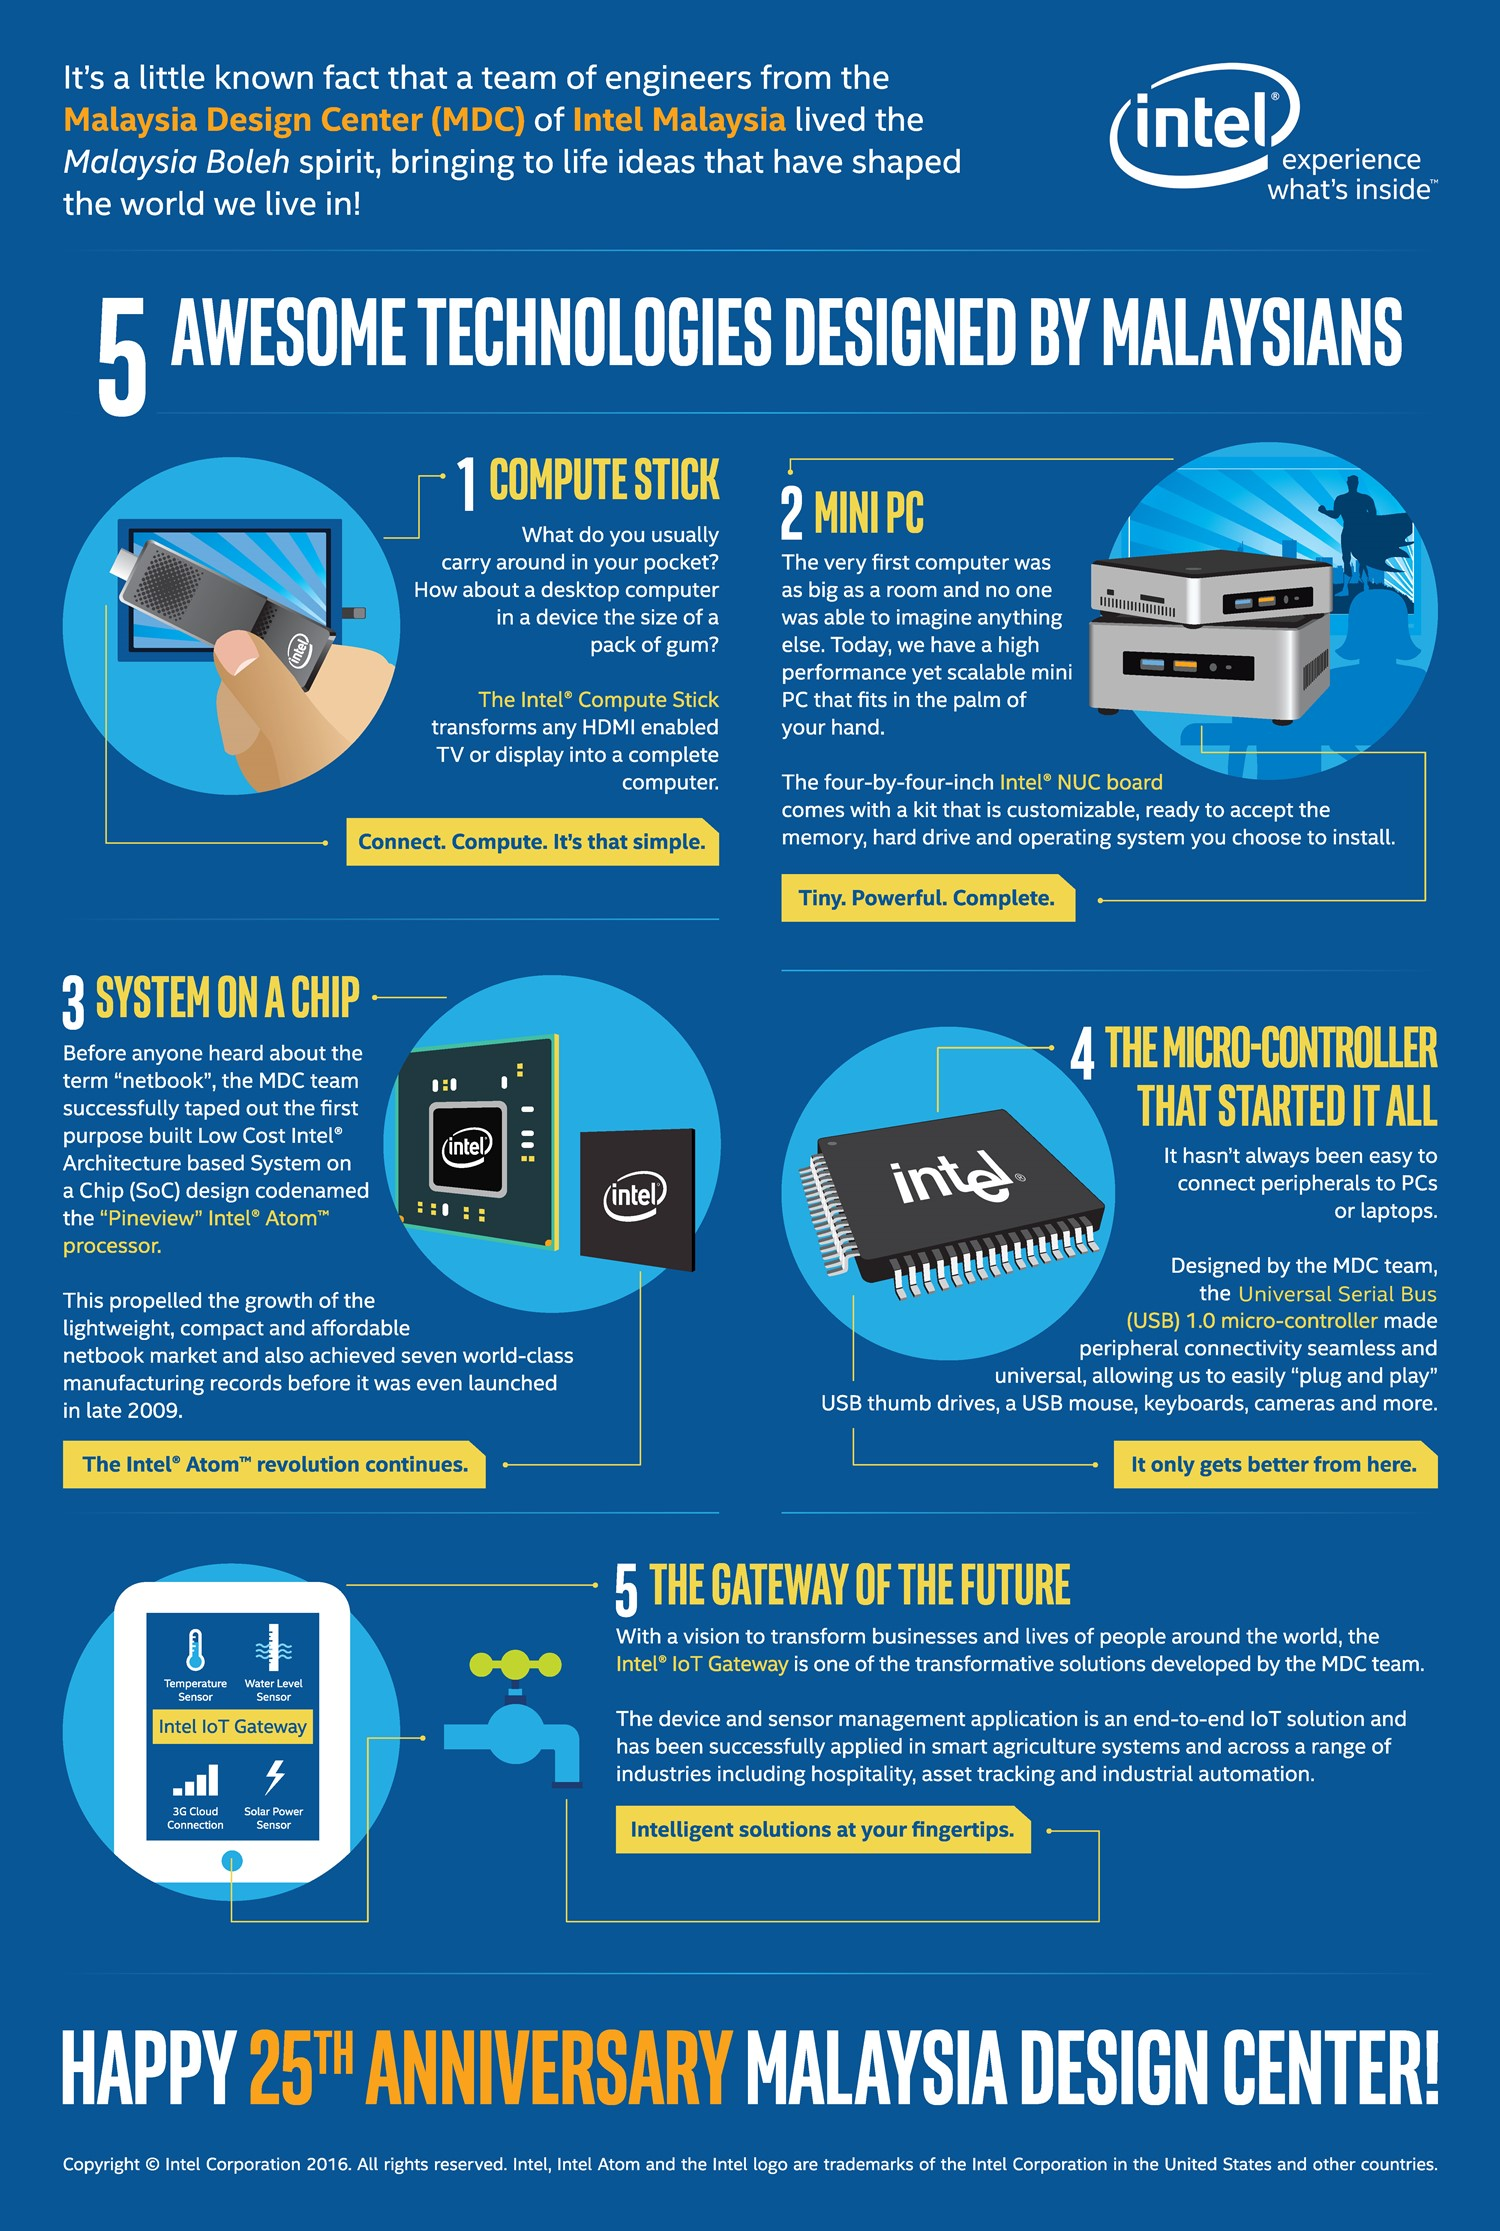 Priority_Intel_feb16_infographic_FB_R12_FA_otl_lowres - FIXED